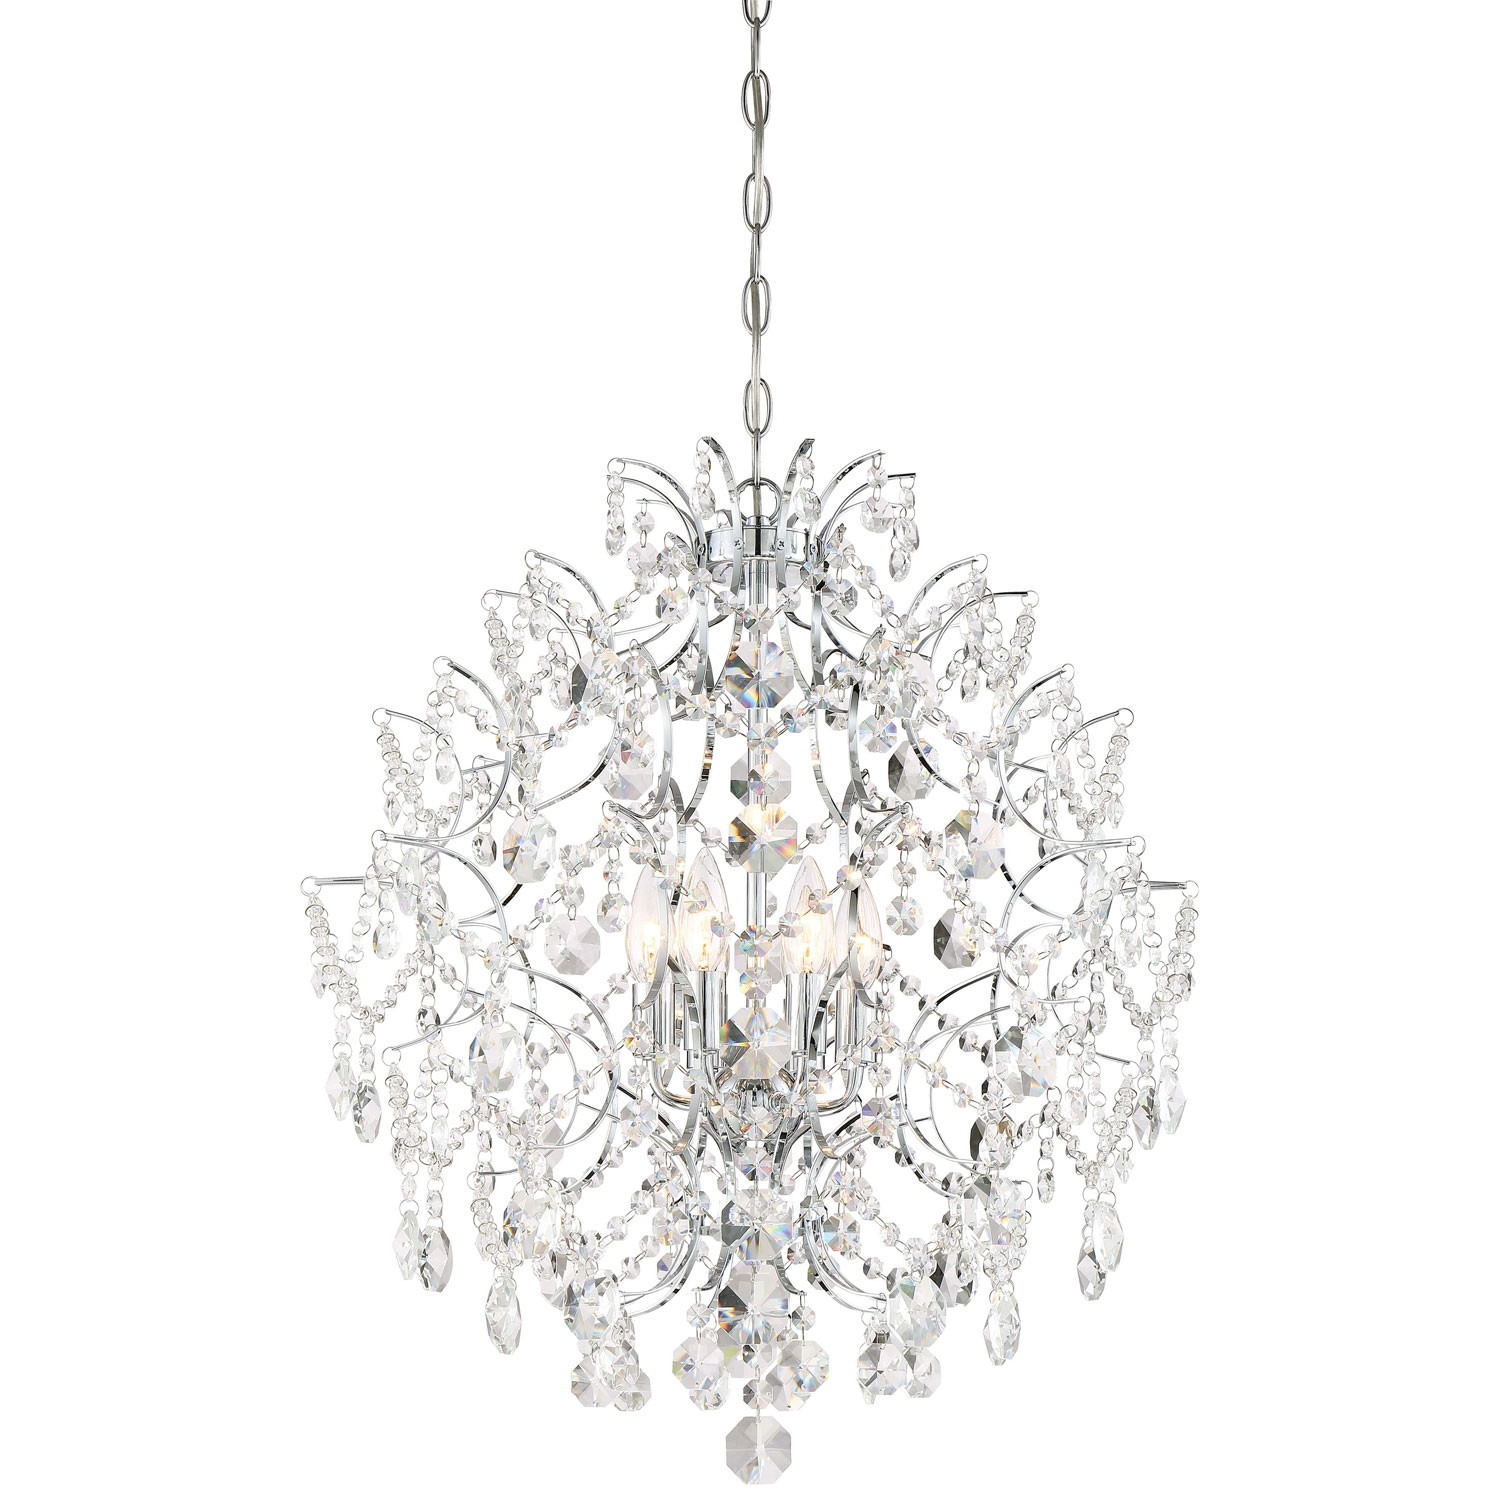 Minka Lavery Isabellas Crown Chandelier In Chrome Transitional For Chrome Chandeliers (Image 11 of 15)